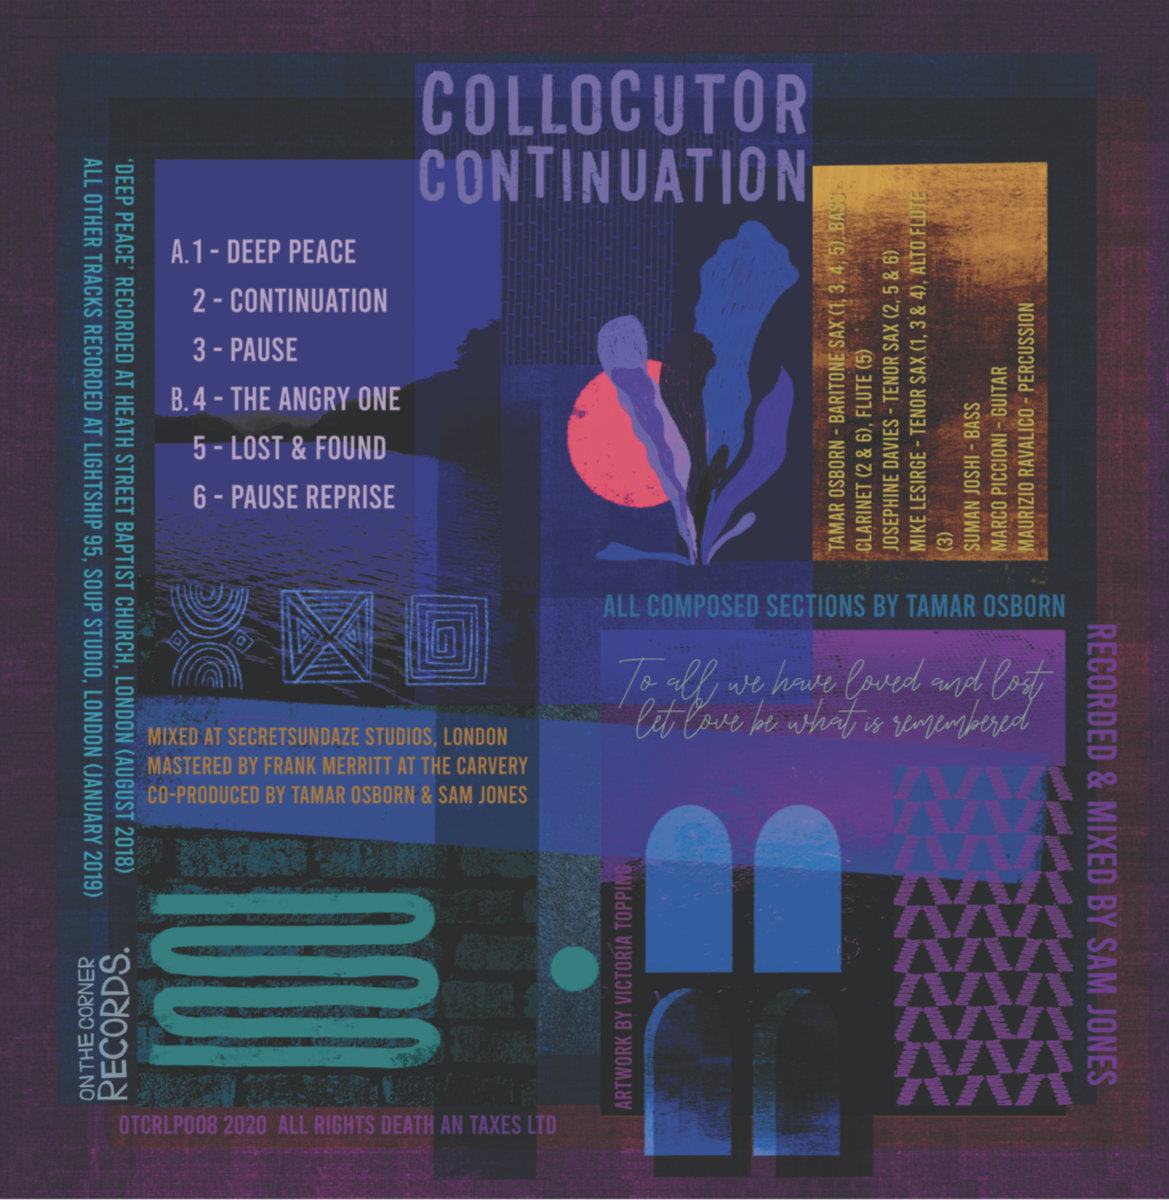 Collocutor - Continuation artwork by Voctoria Topping.